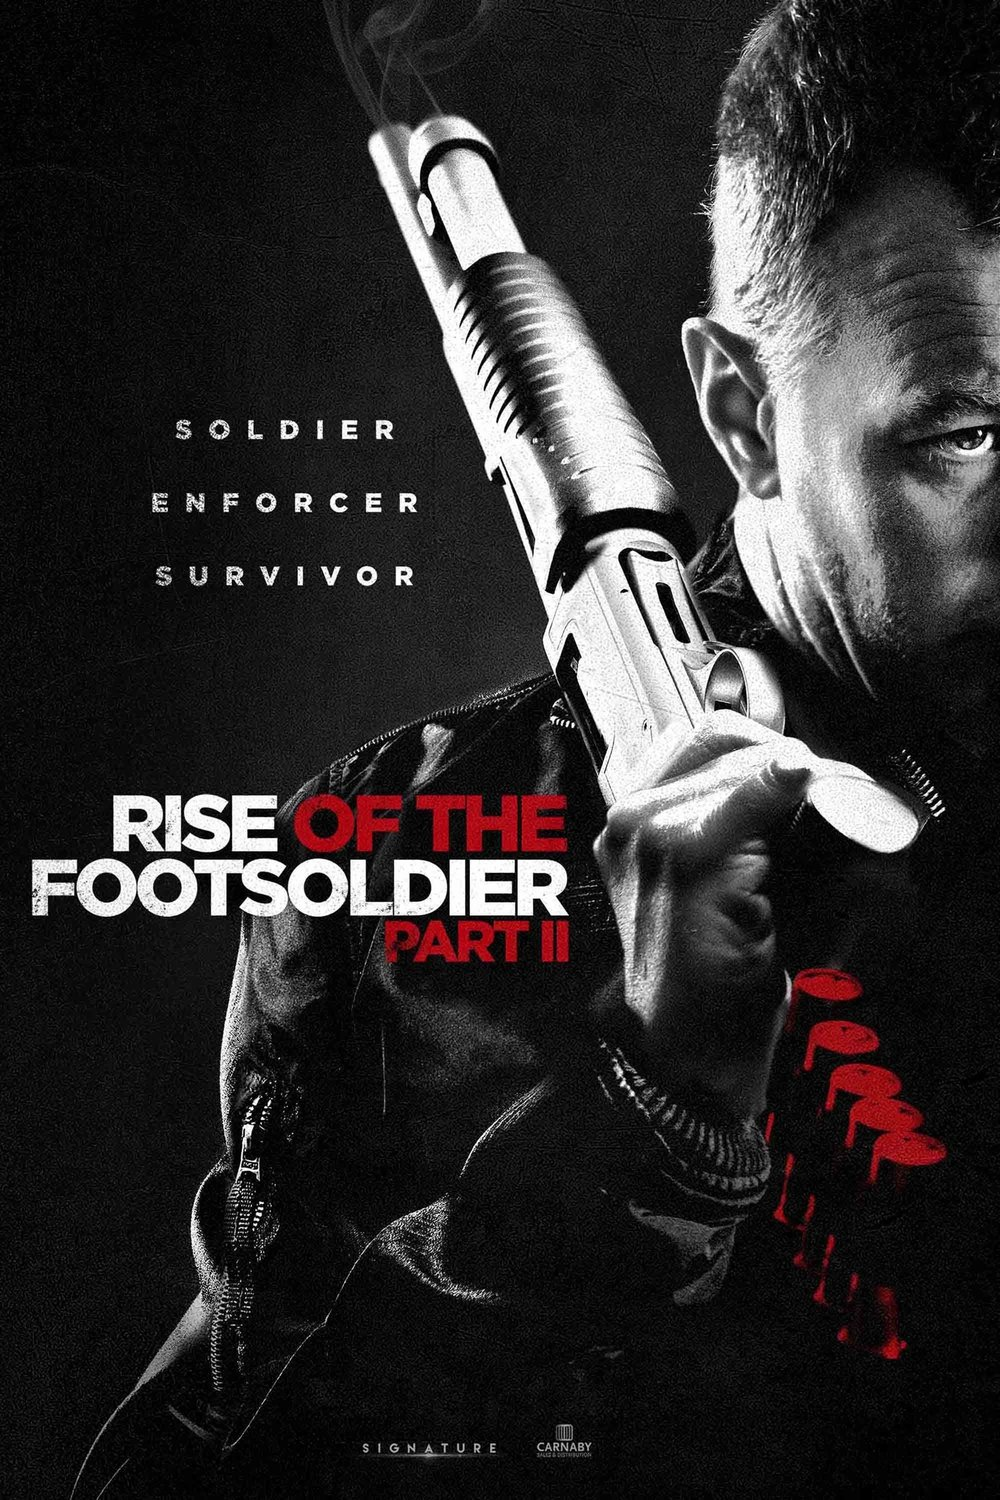 rise-of-the-footsoldier-part-ii.39556.jpg